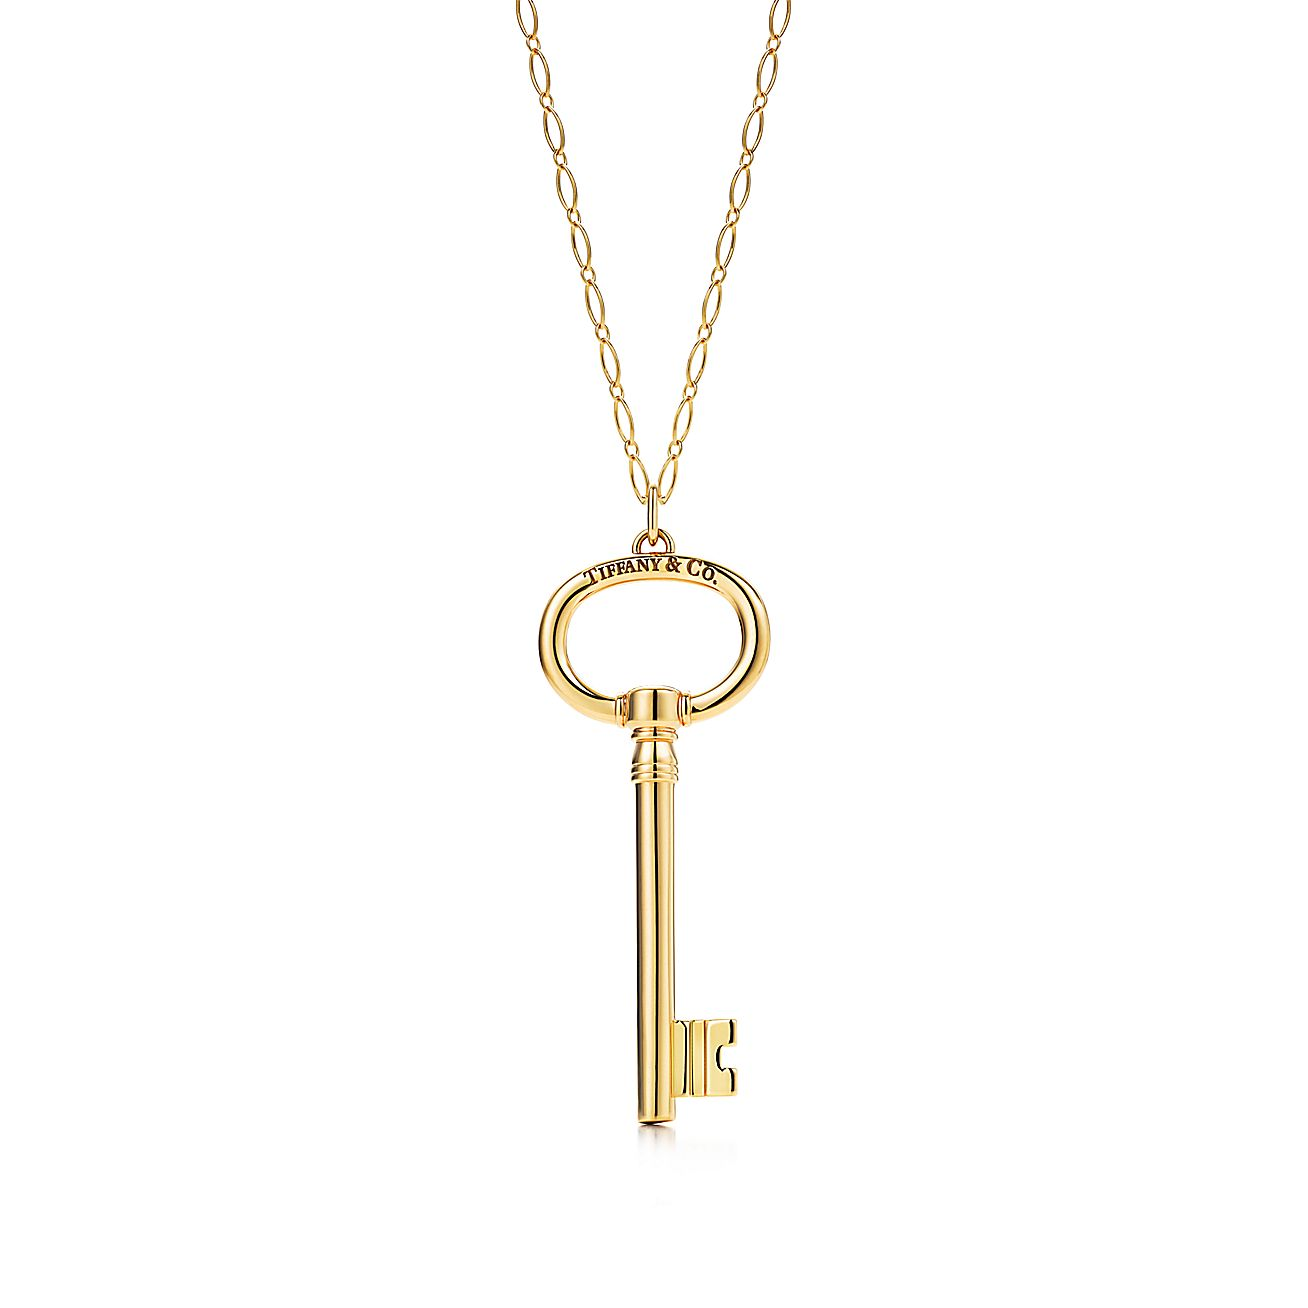 Tiffany Keys<br>Oval key pendant